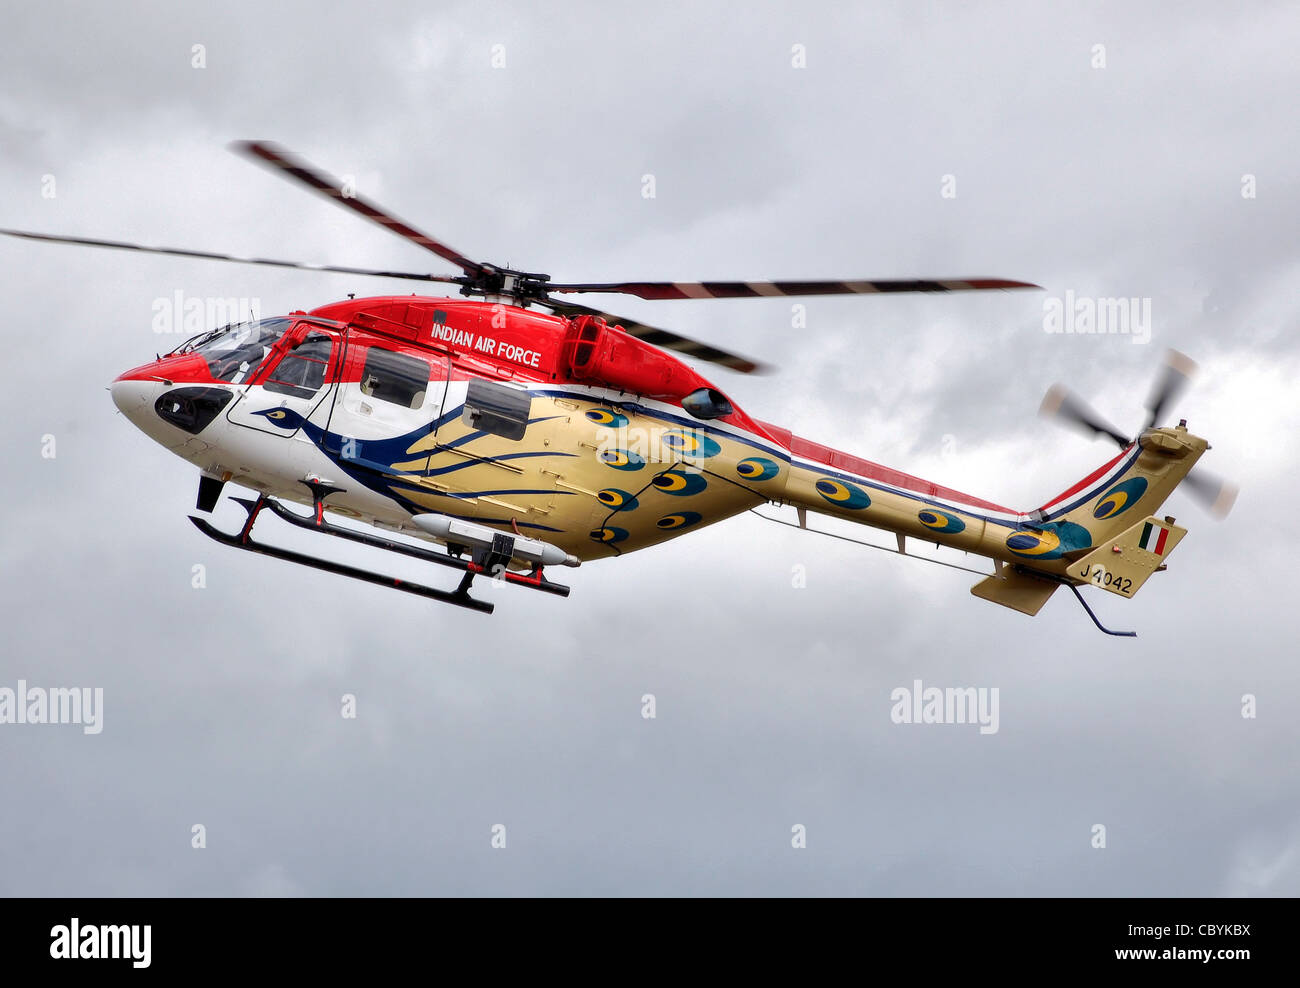 Hindustan ALH Druv helicopter (code J4042) of the Sarang Helicopter Display Team of the Indian Air Force at the - Stock Image